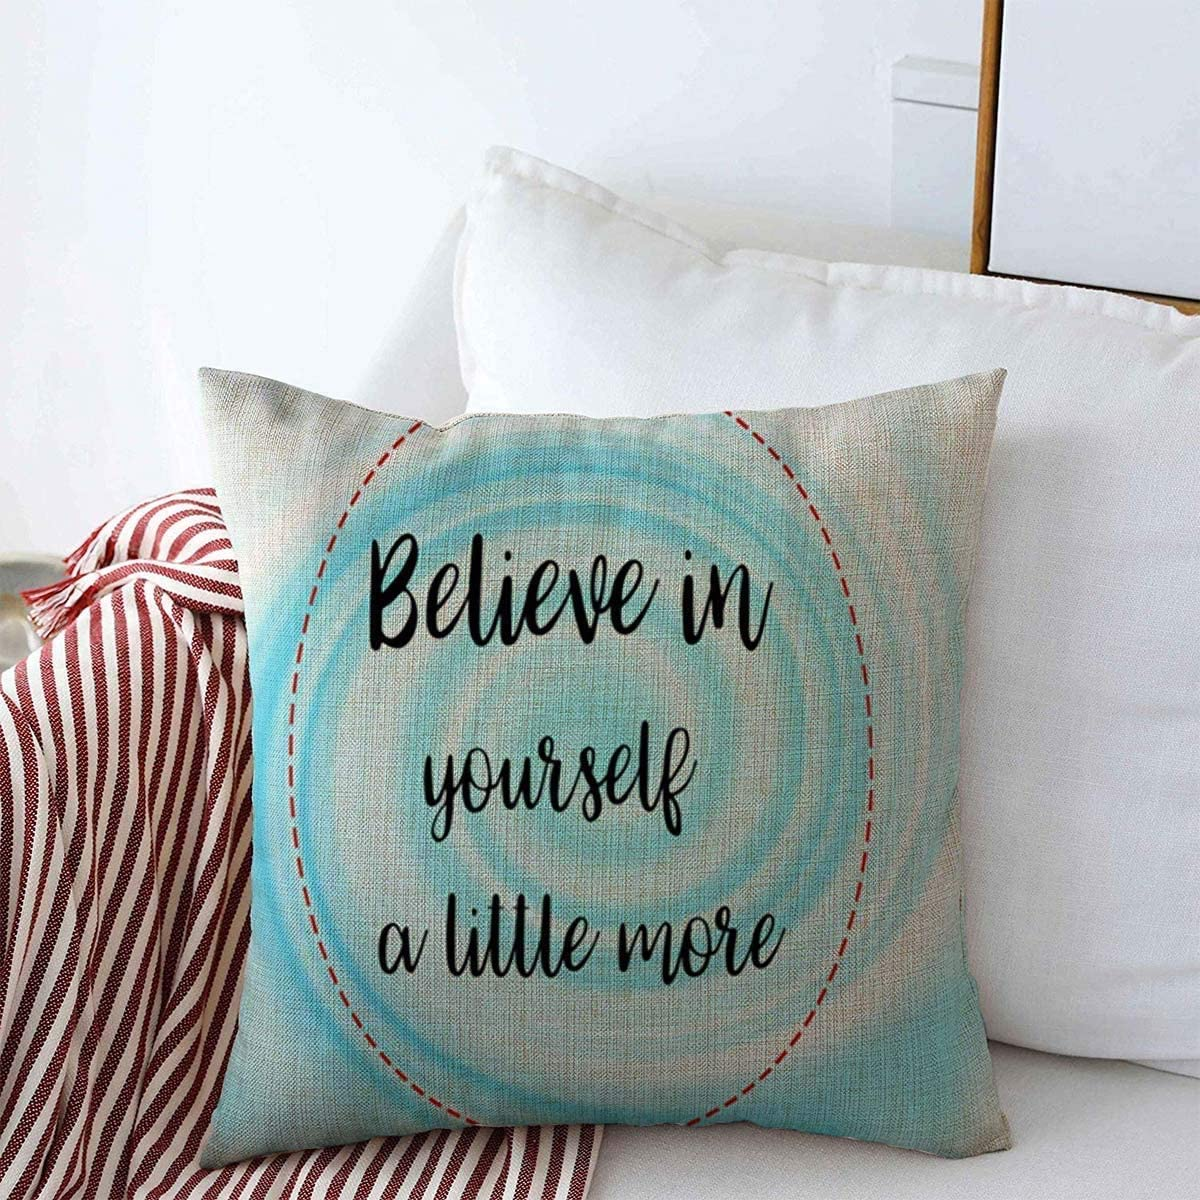 Amazon Com Throw Pillow Covers Sweet Blue Candy Believe Yourself Little More Words Cream On Abstract Color Life Pattern Quote Design Decorative Cushion Pillow Case Cotton Linen For Winter Decor 18 X 18